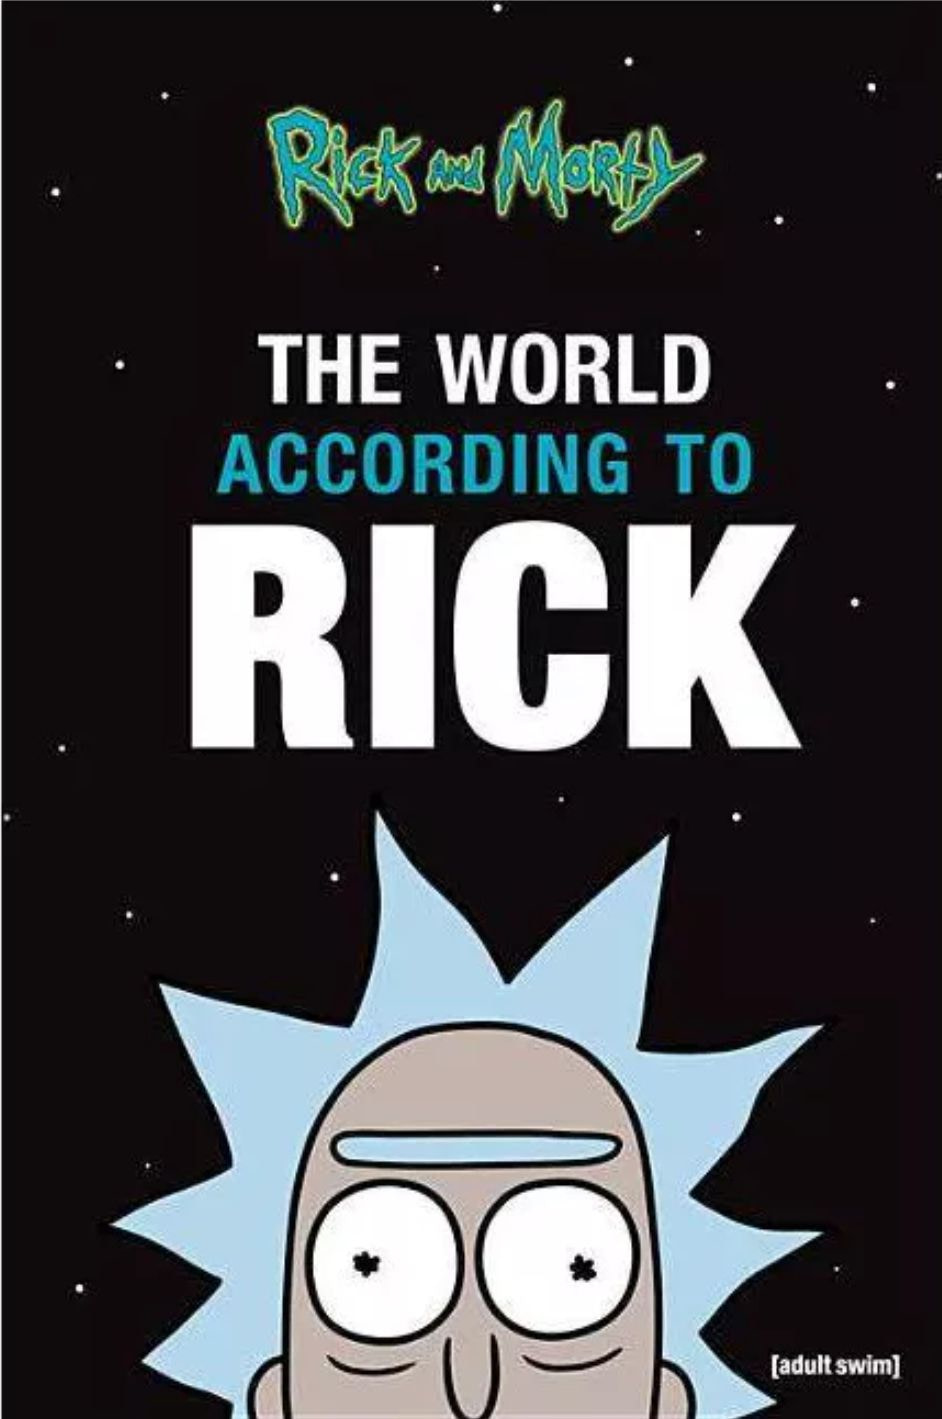 Oh geez Rick, not another gift guide!